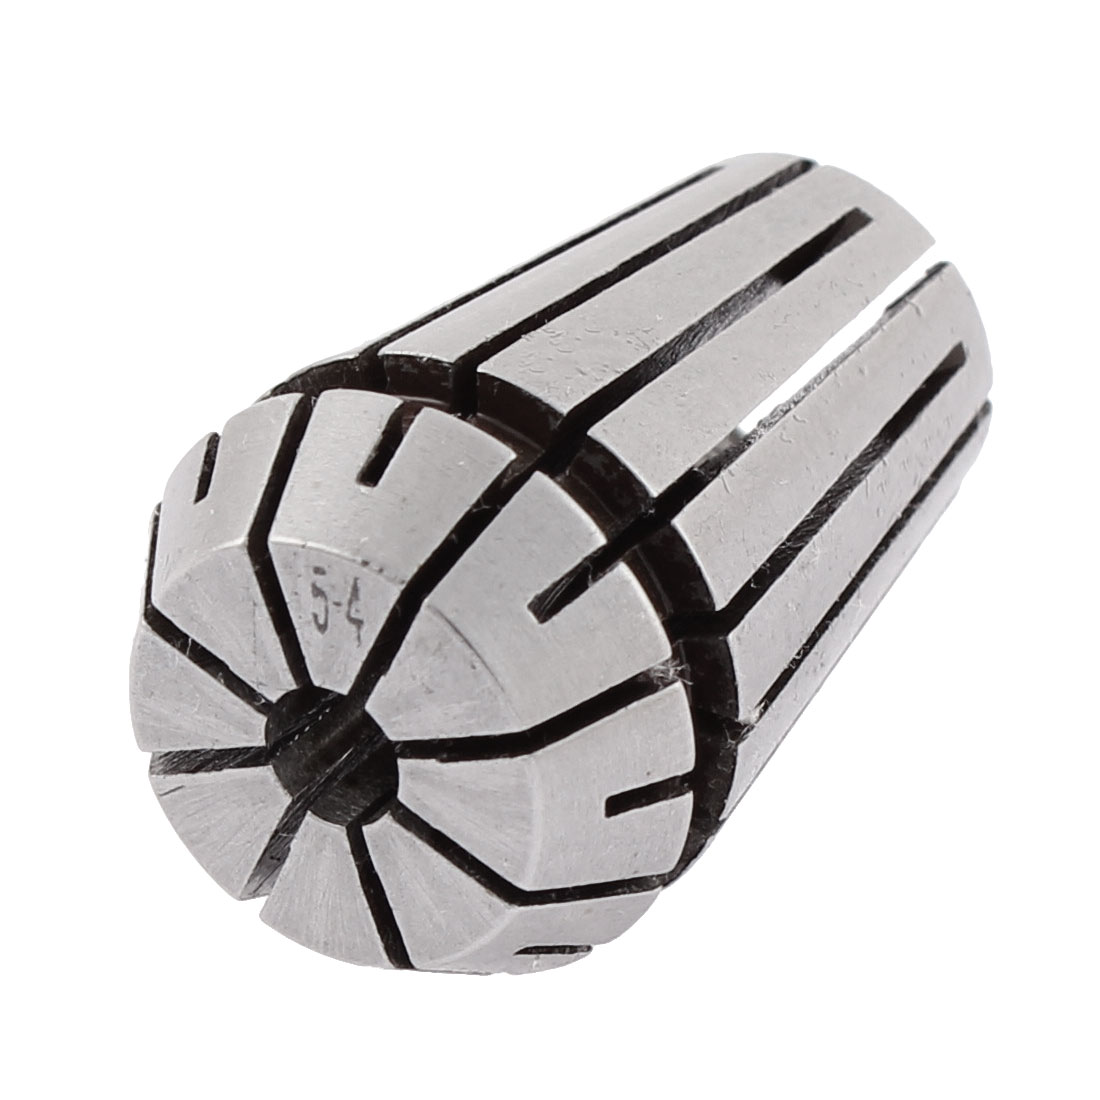 ER20 5mm Clamping Dia Spring Collet Socket Silver Tone